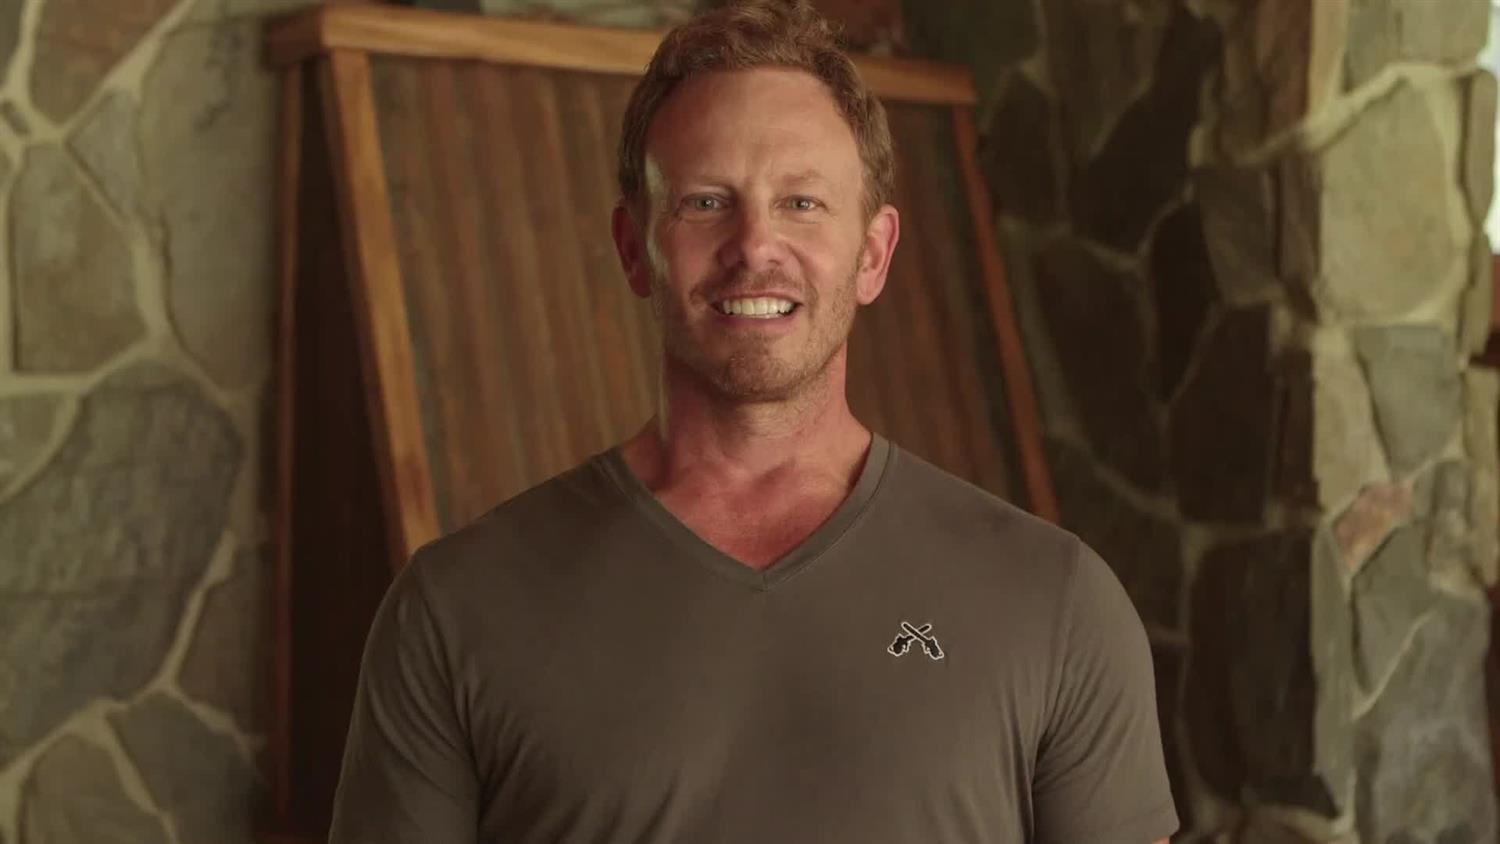 Ian Ziering - The real message behind the brand…